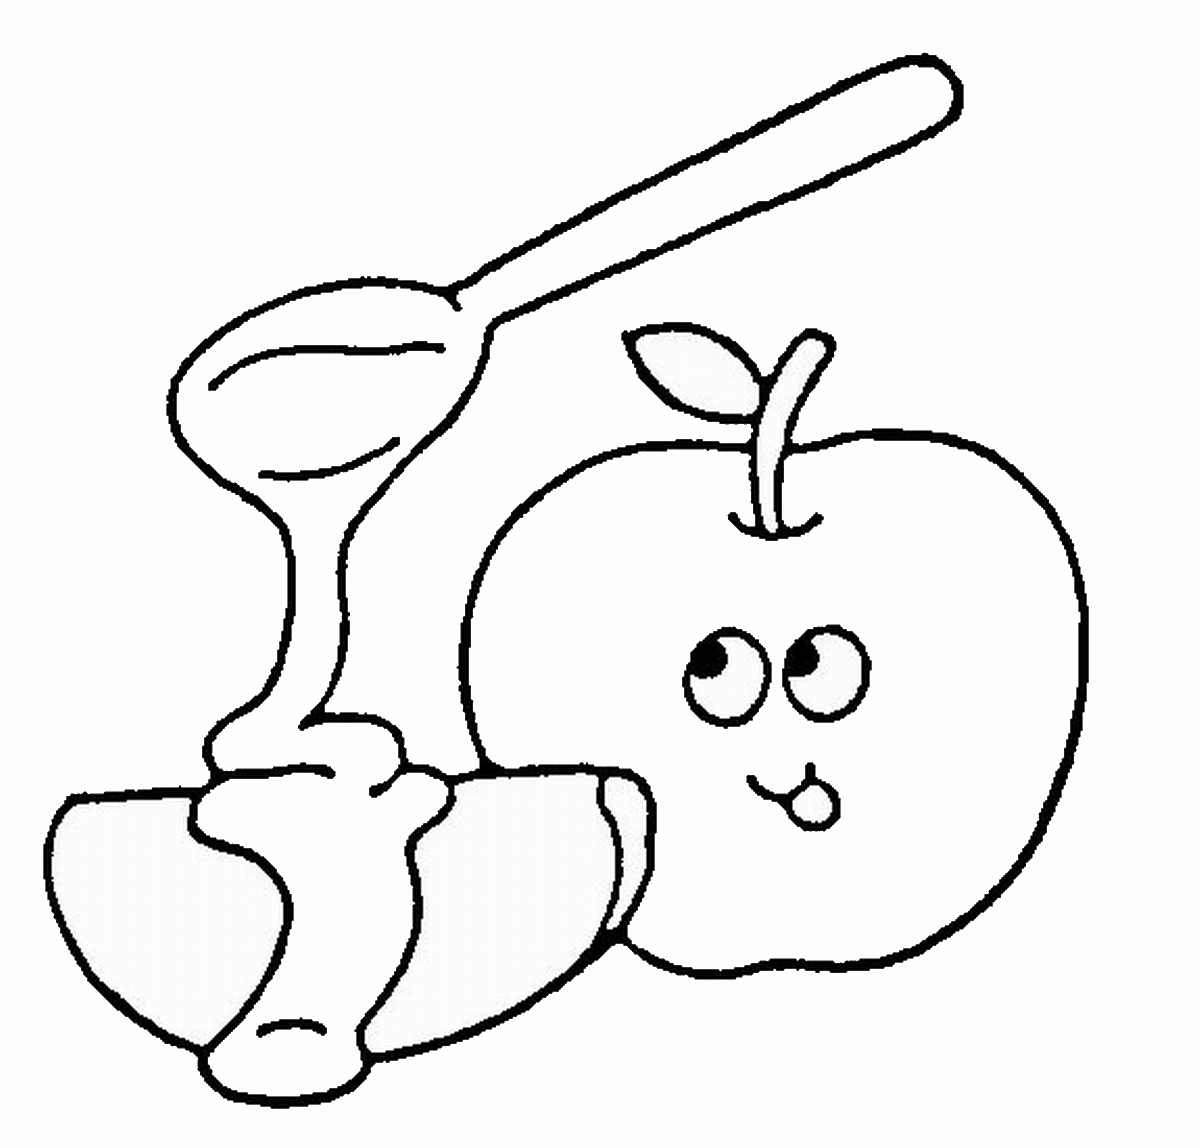 coloring pages rosh hashanah rosh hashanah coloring pages printable for kids family pages coloring rosh hashanah